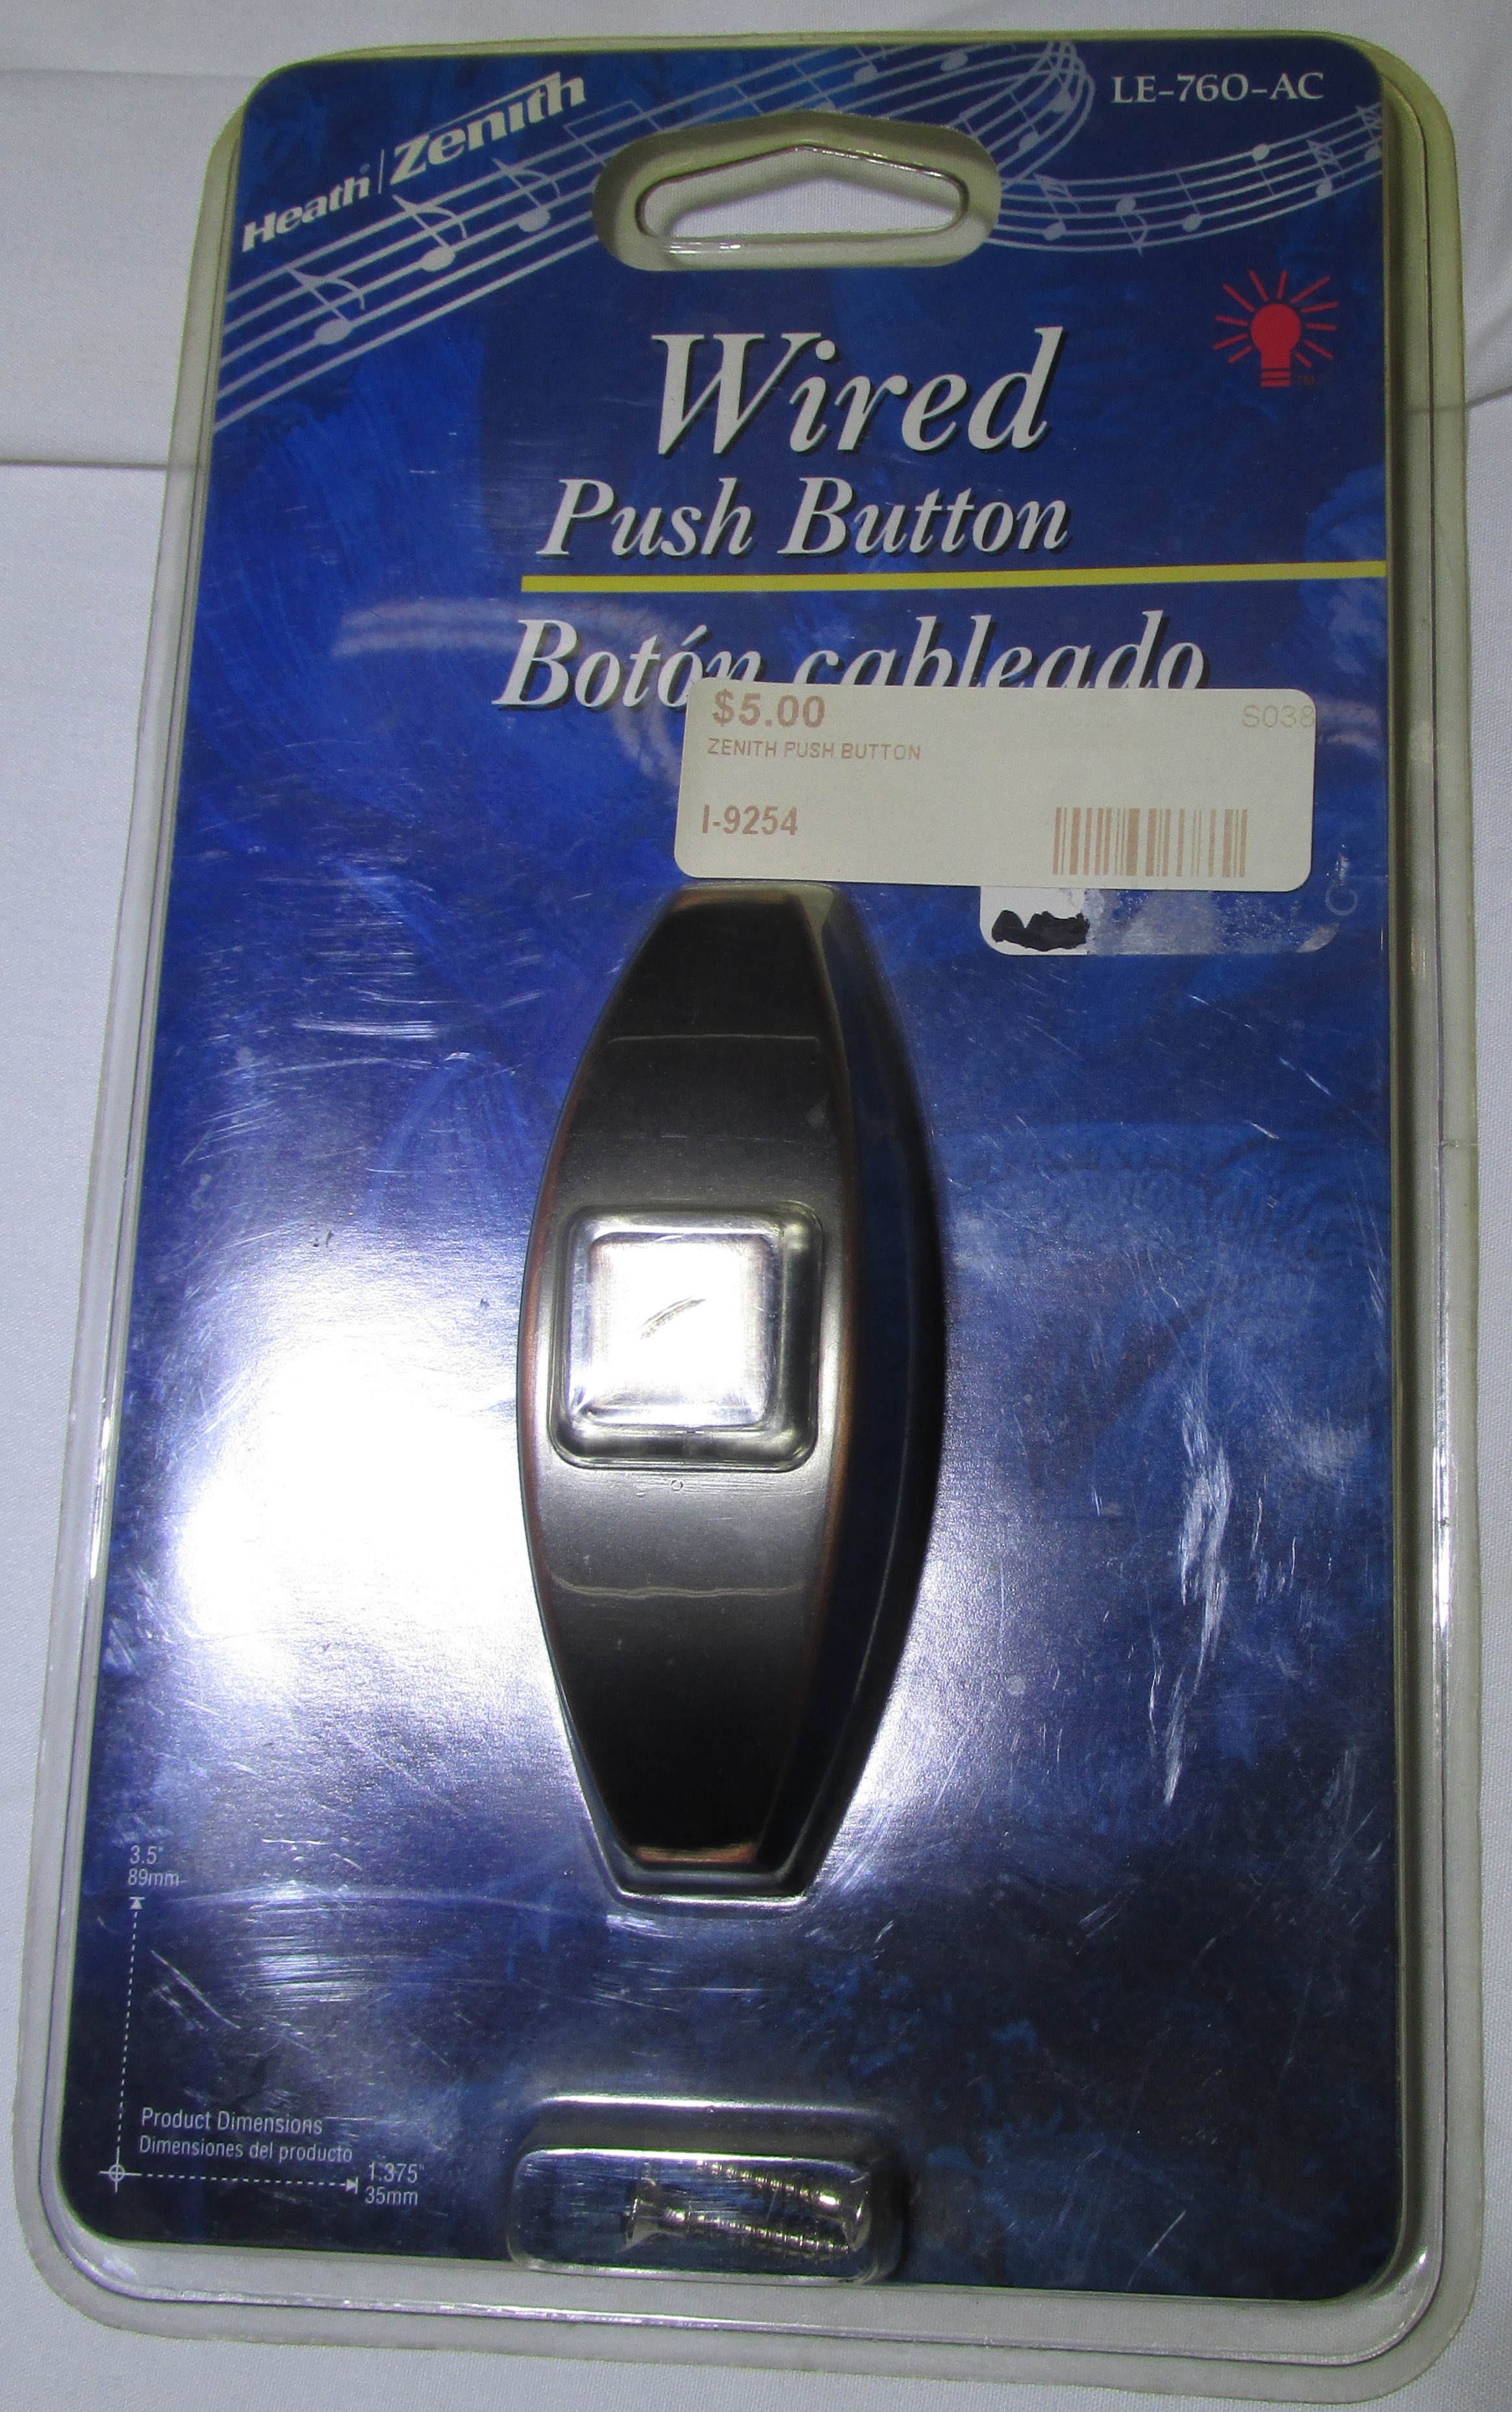 Heath/Zenith LE-760-AC Wired Push Button  -  NEW IN PACKAGE